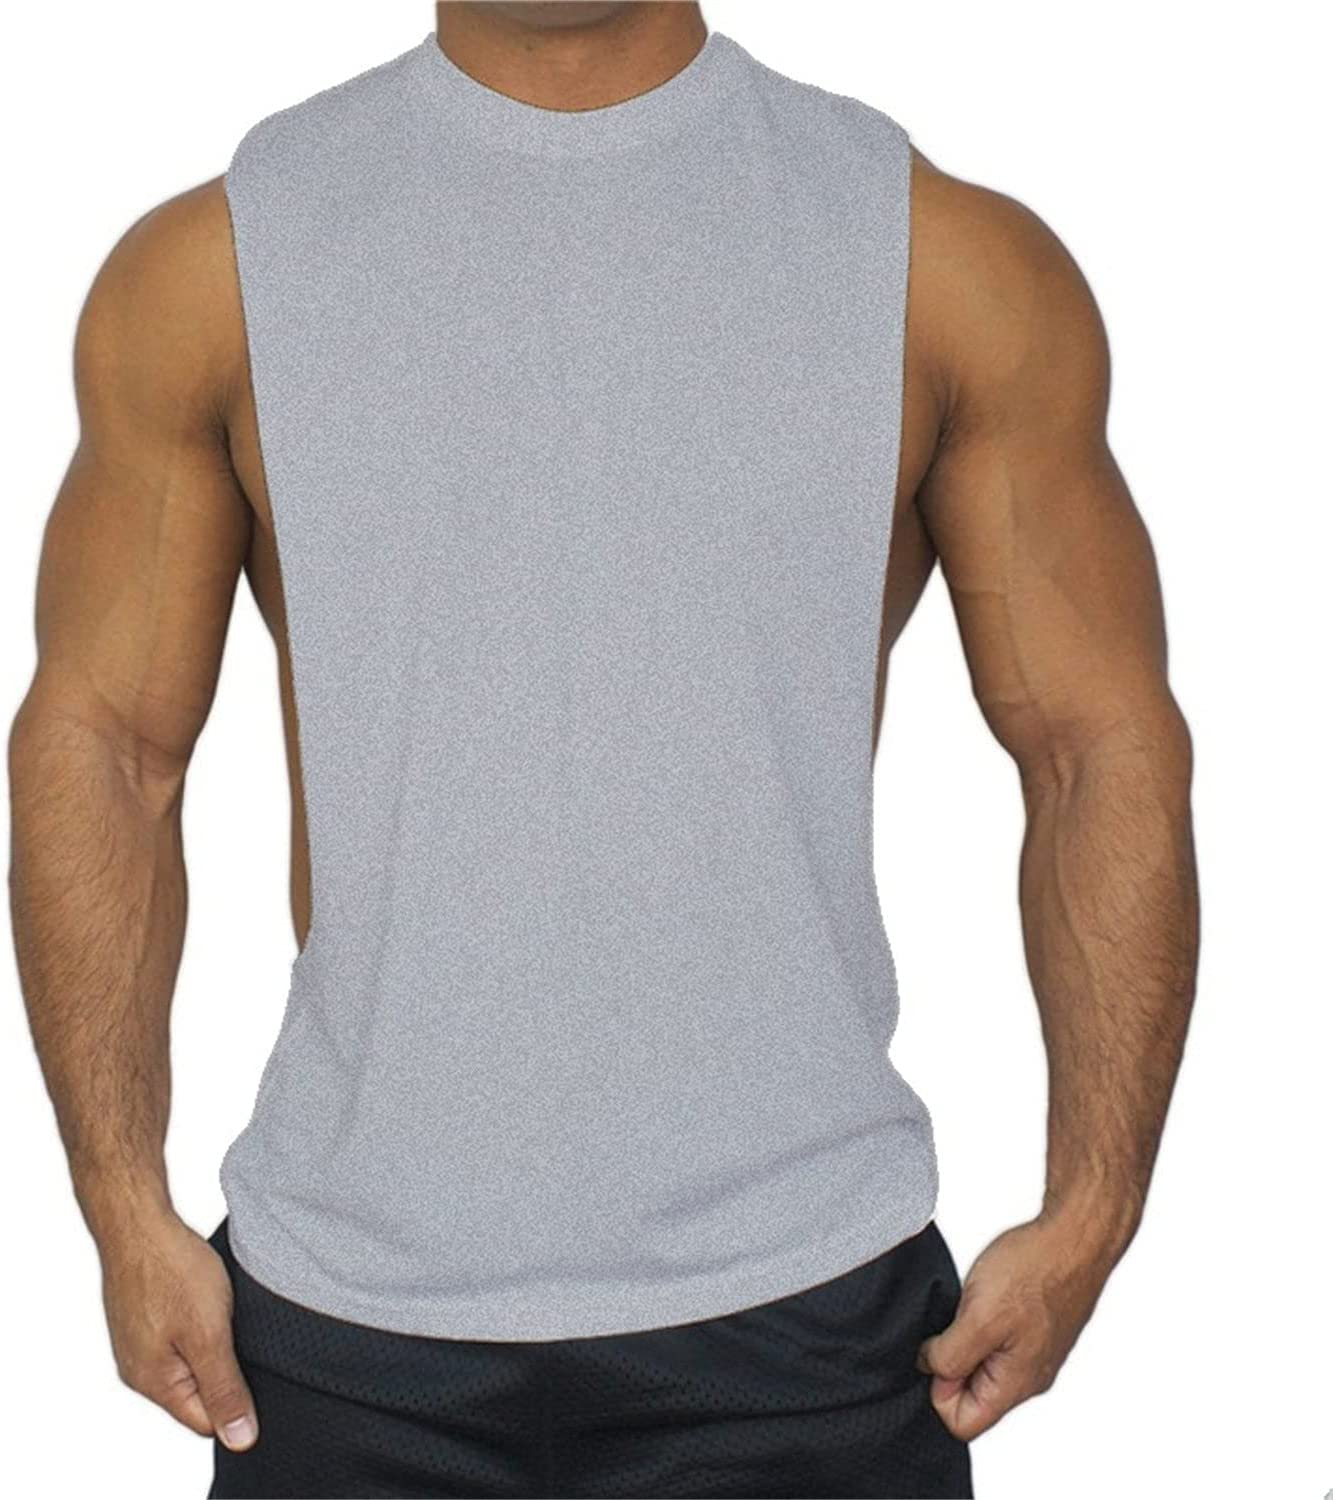 Men's Muscle Bodybuilding Workout Sleeveless Quick [Alternative dealer] Tees Fitt Dry Popular products